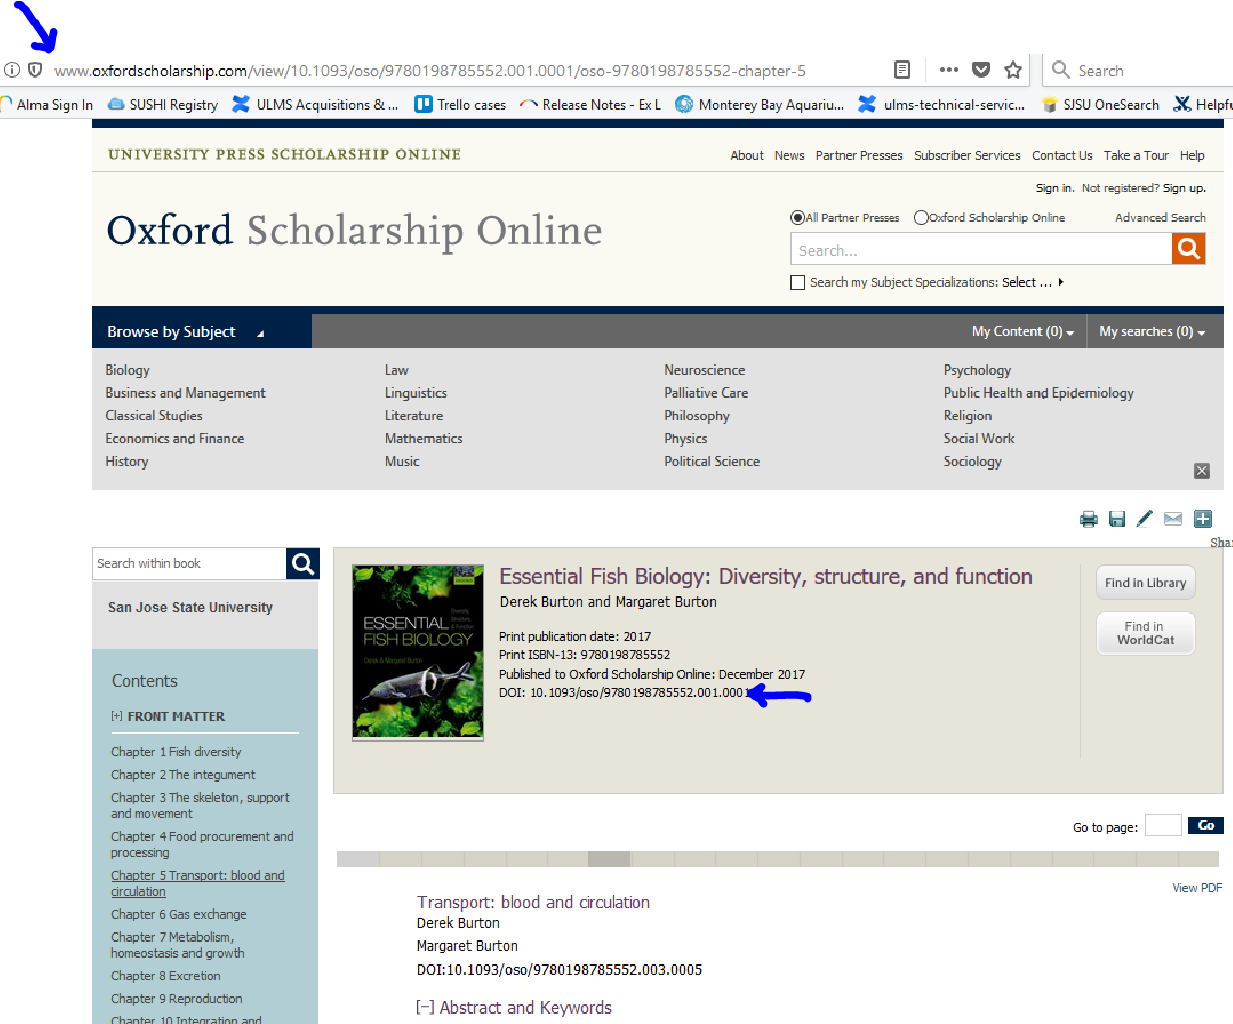 Permalink for Oxford ebook using address in browser